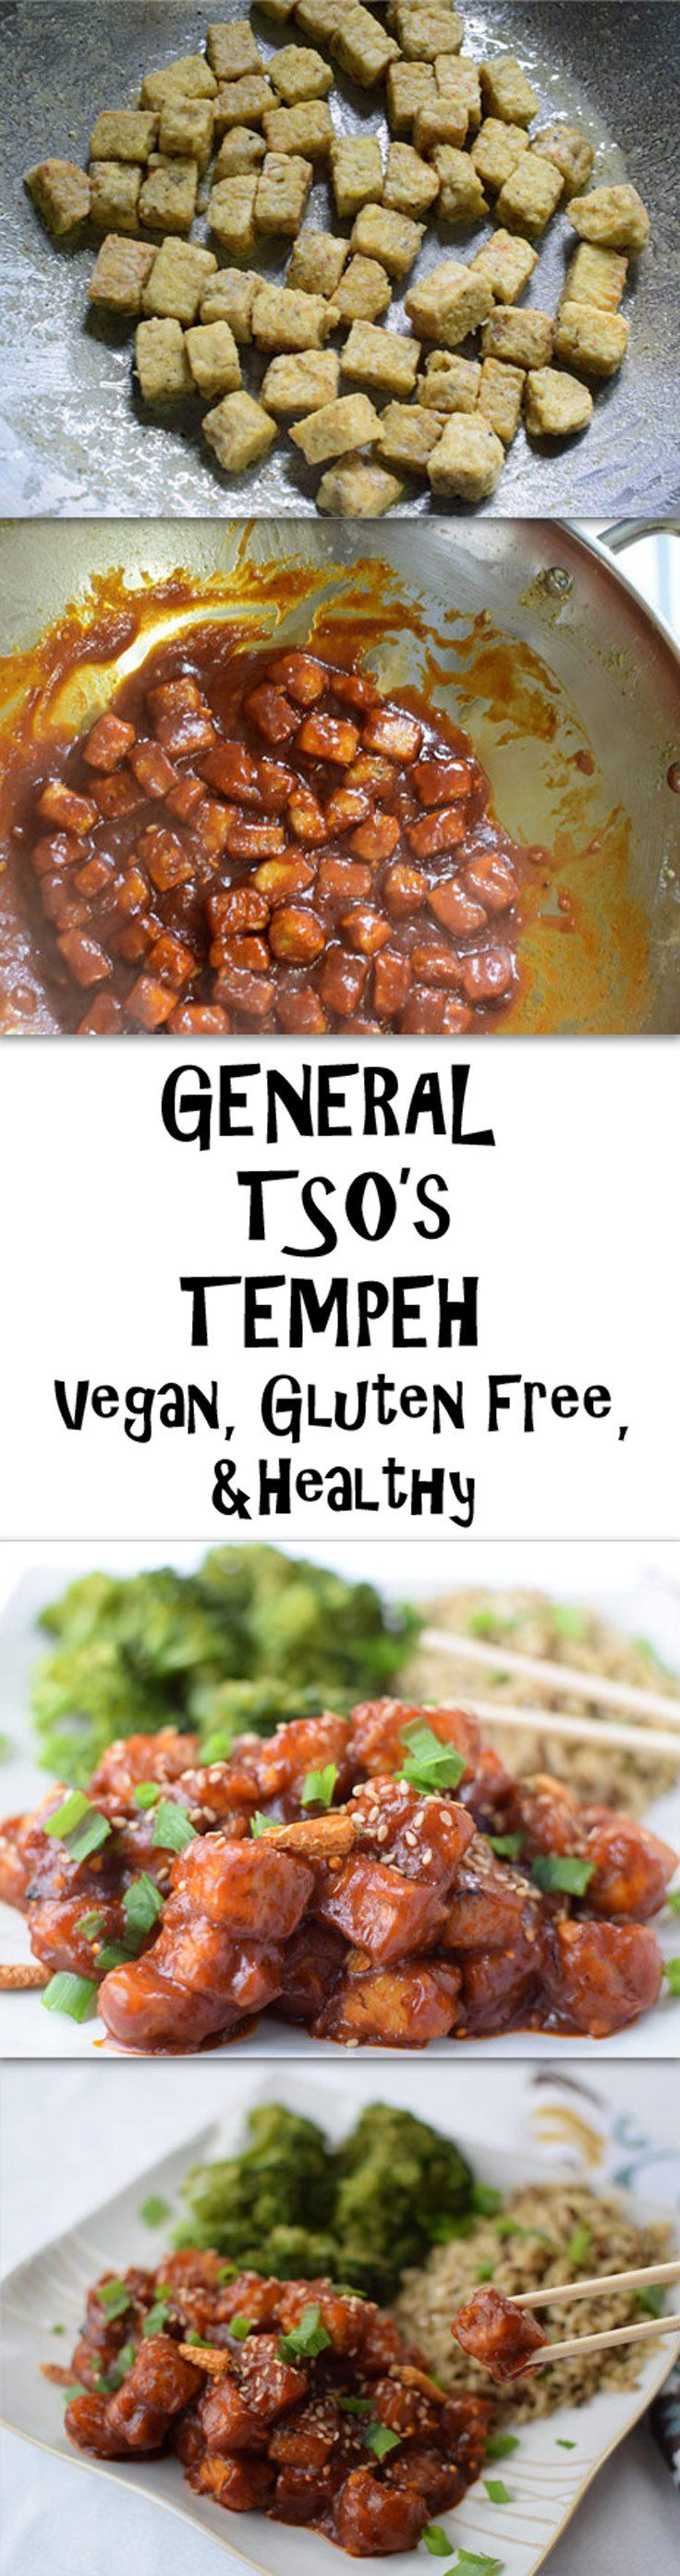 General Tso's Tempeh - A vegan amd healthy version of a classic dish  (Add peapods, baby corn, baby bok choy, and some other vegies for more filling, healthy twist on a favorite (jt note))